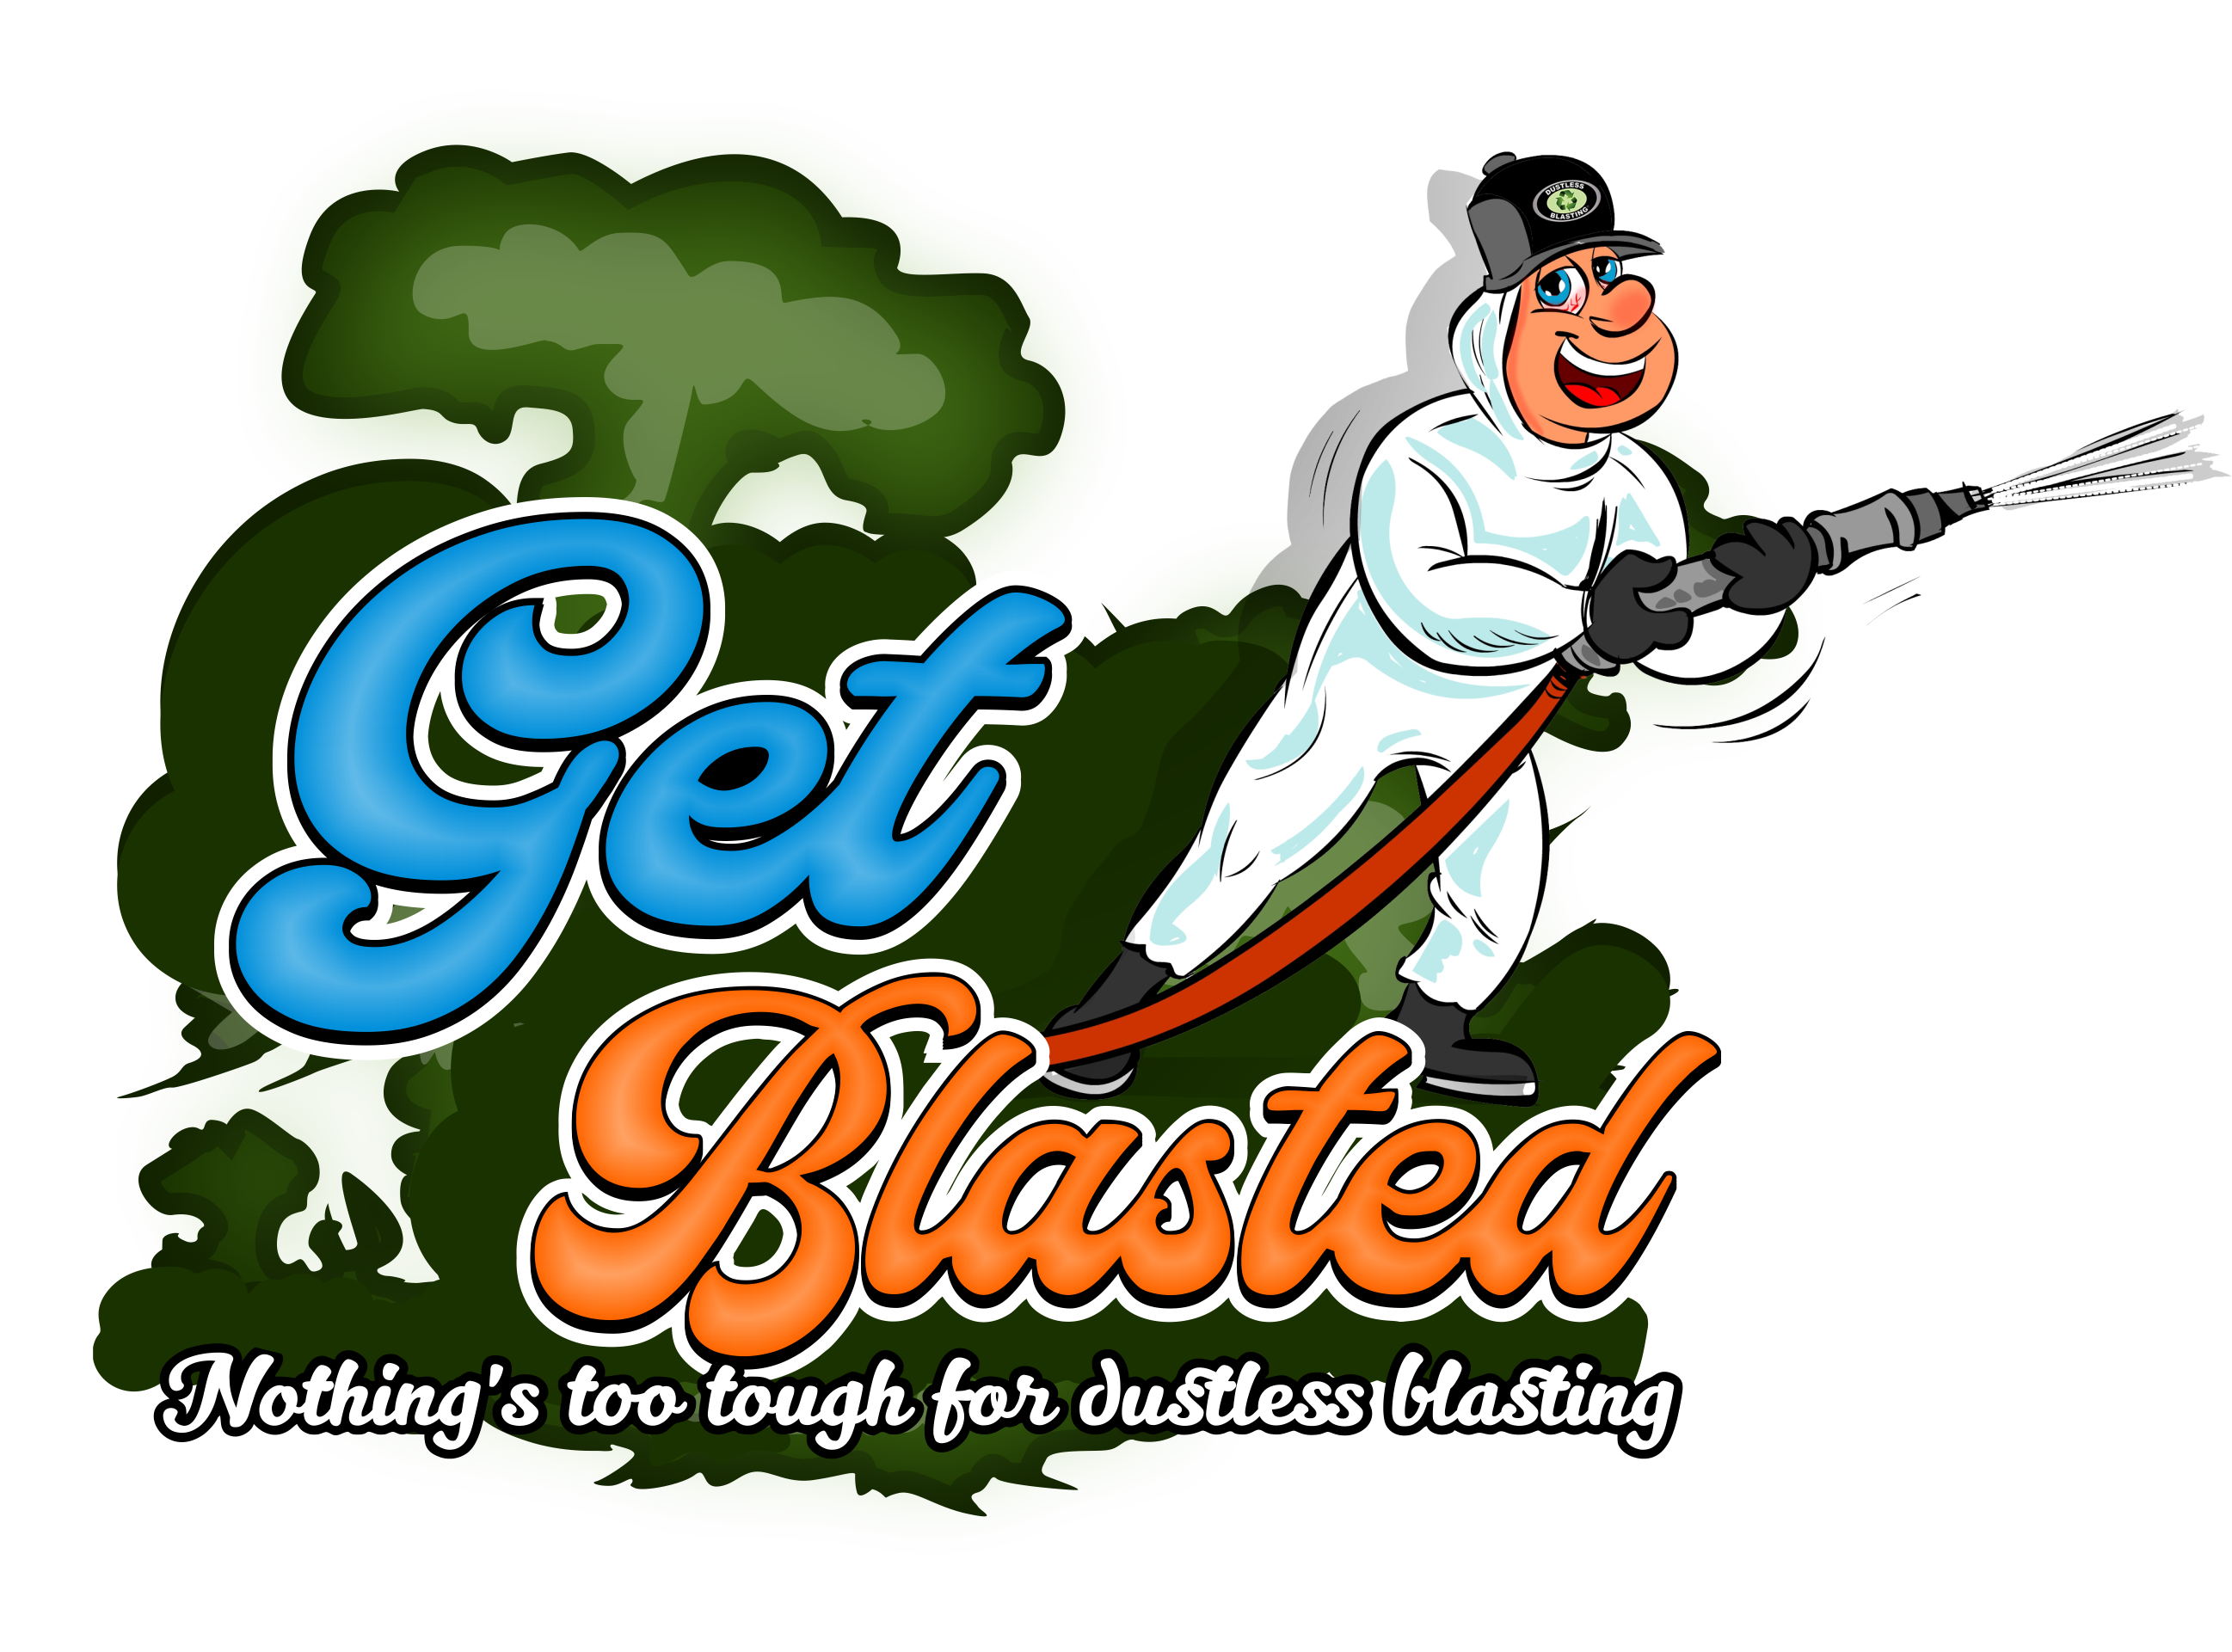 Get Blasted